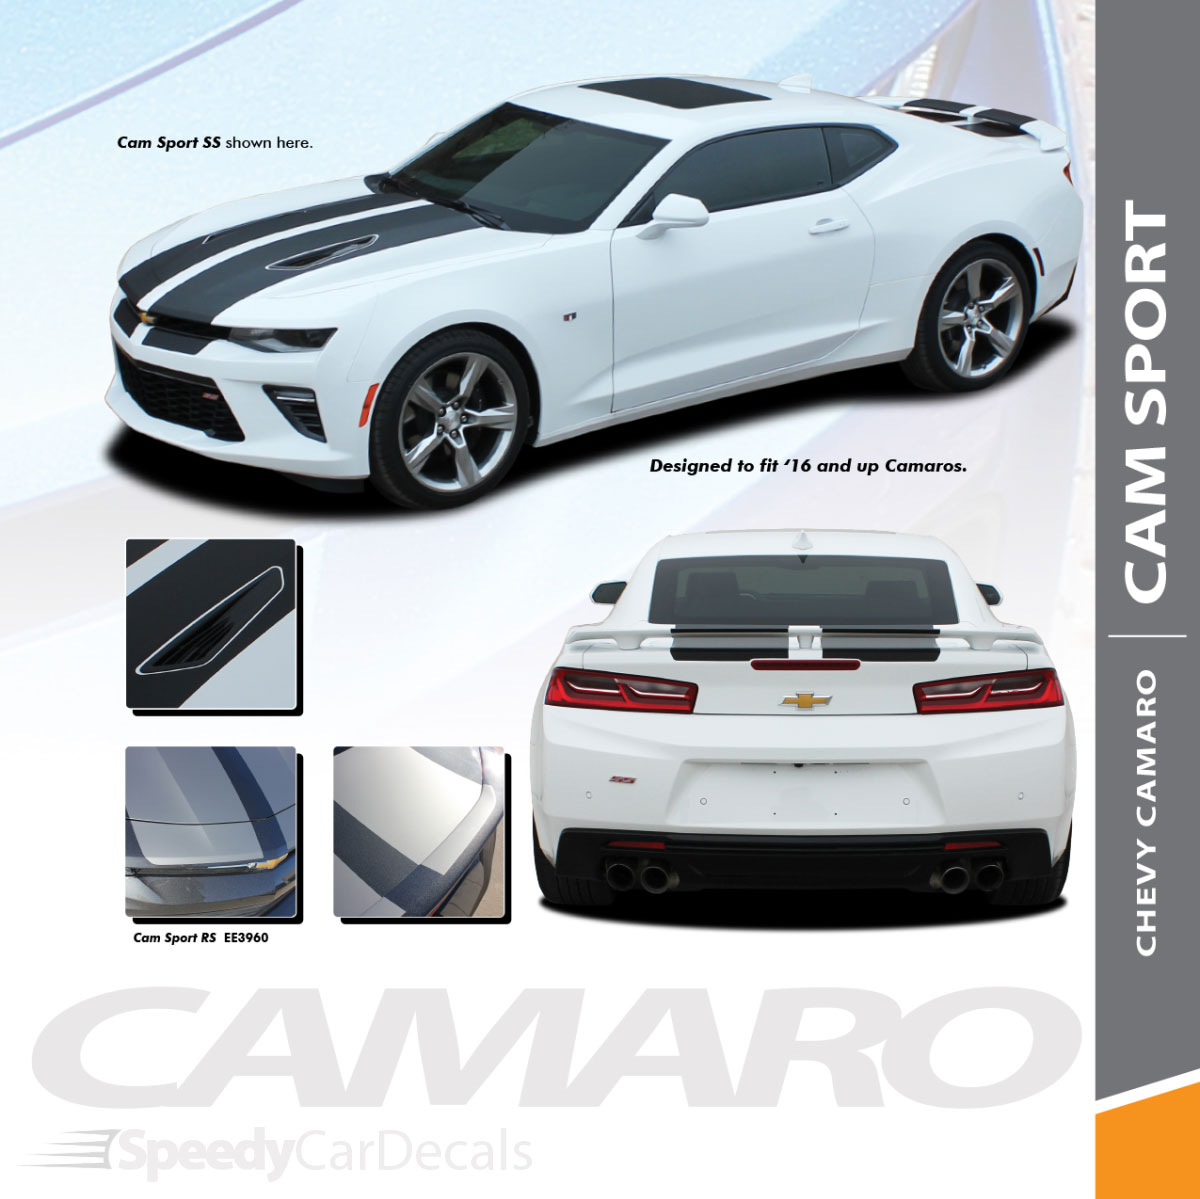 Chevy camaro racing stripes cam sport 2016 2018 rally vinyl graphics wet and dry